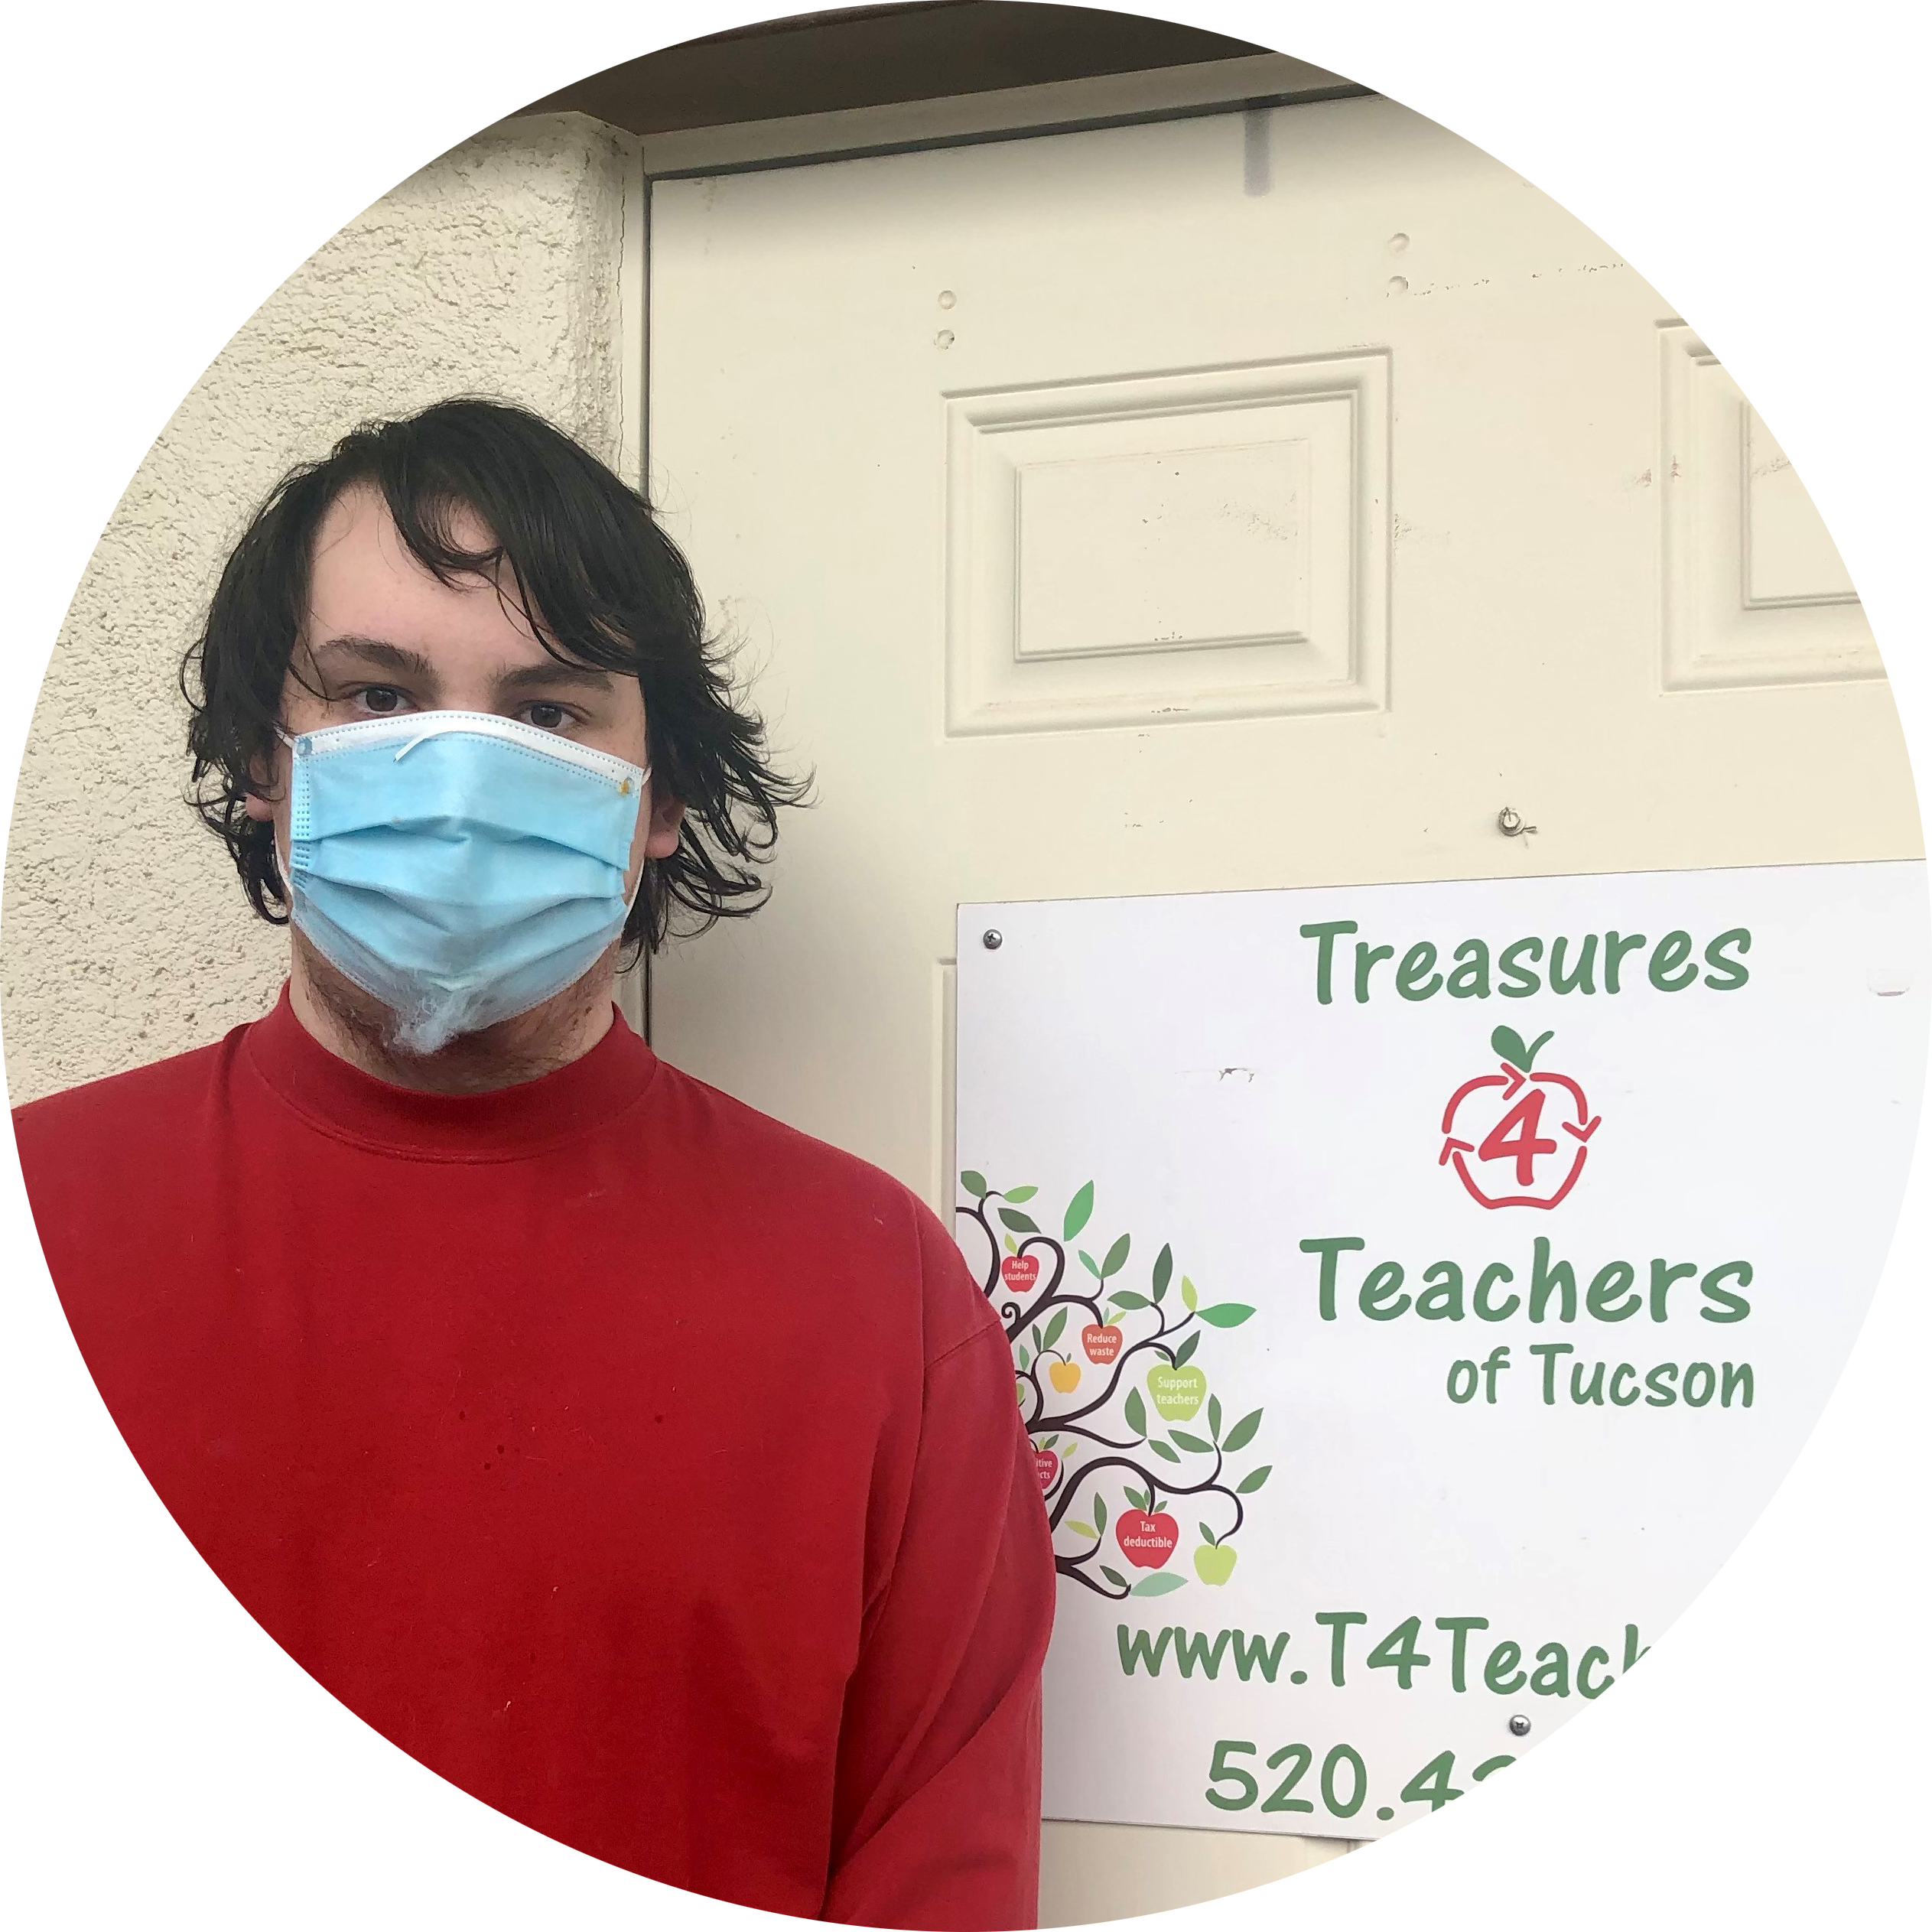 Photo of Dylan Gallaway - a young white man wearing a red shirt and a medical mask standing in front of the door to Treasures 4 Teachers of Tucson